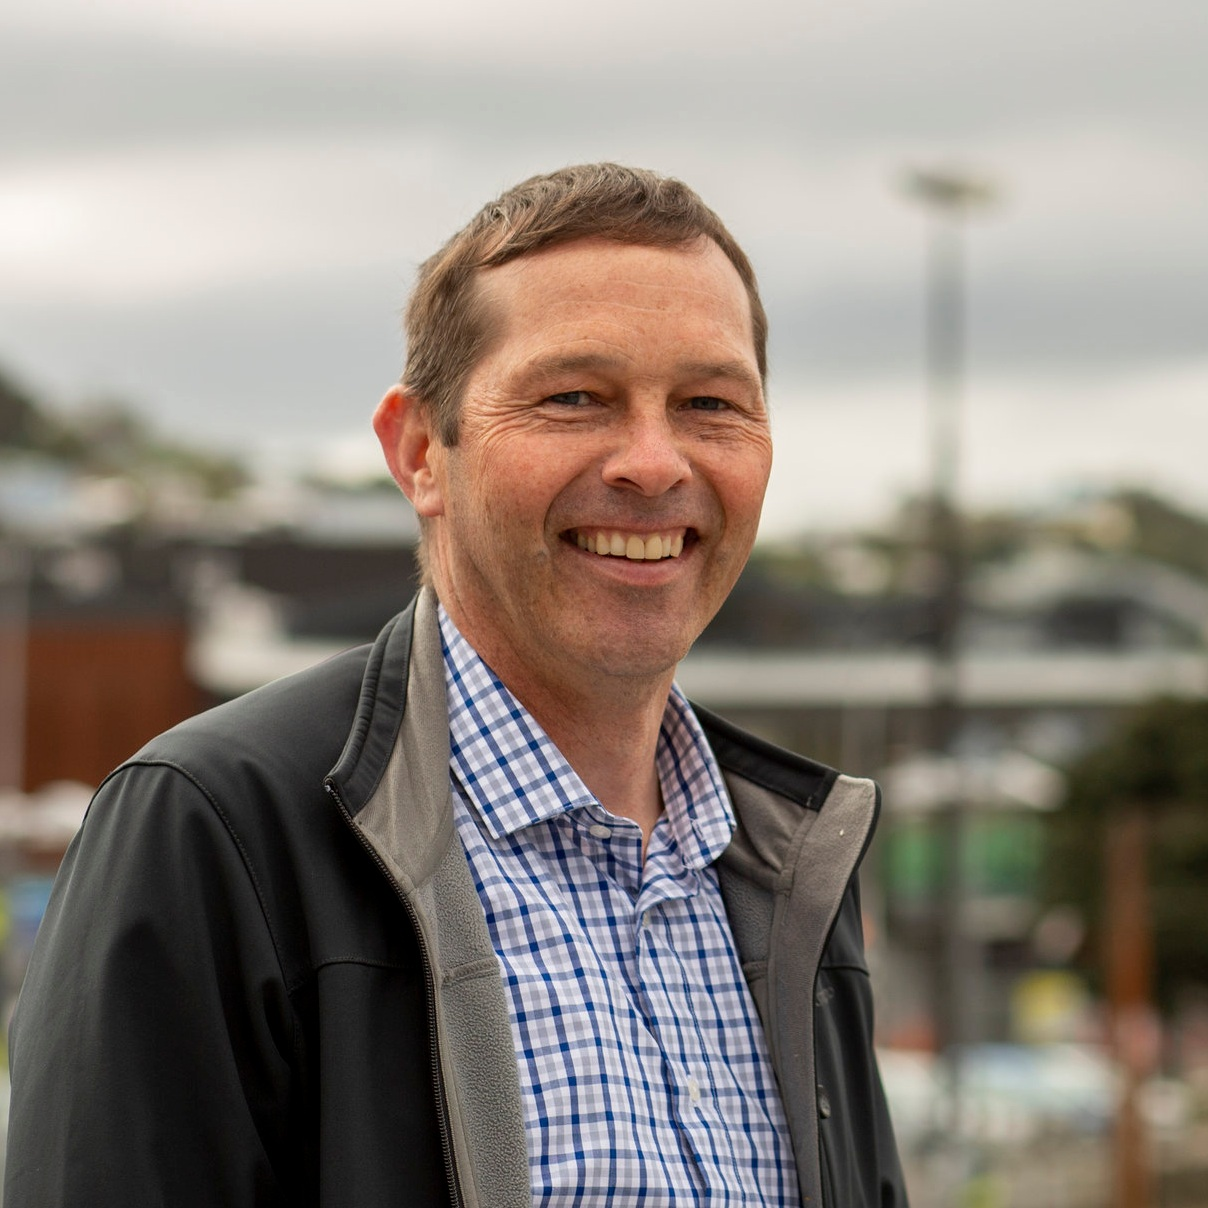 John Apanowicz - The Wellington Party Candidate for Northern Ward & CCDHB